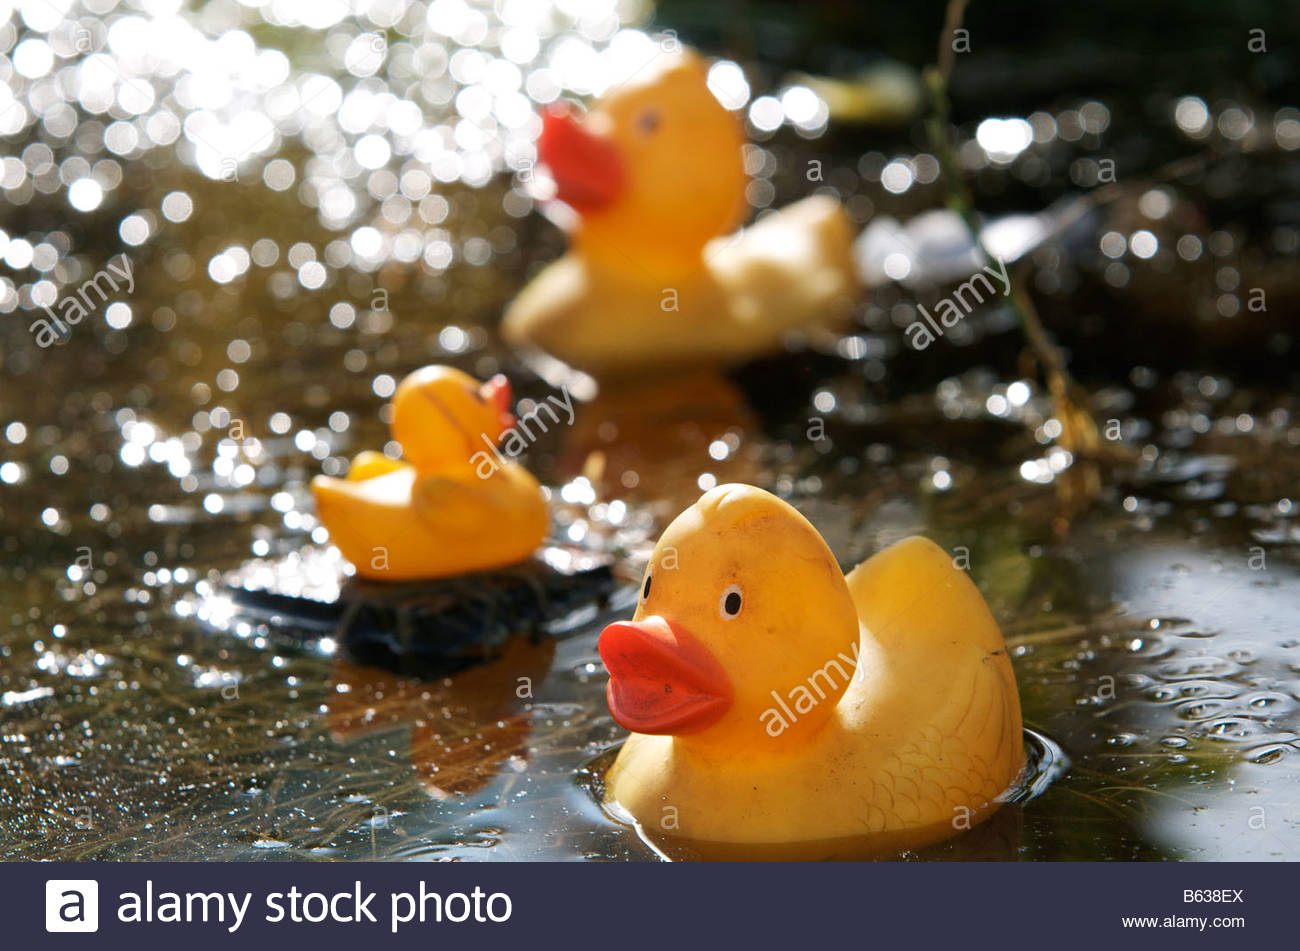 Yellow rubber ducks floating in a pool of rain water after heavy ...